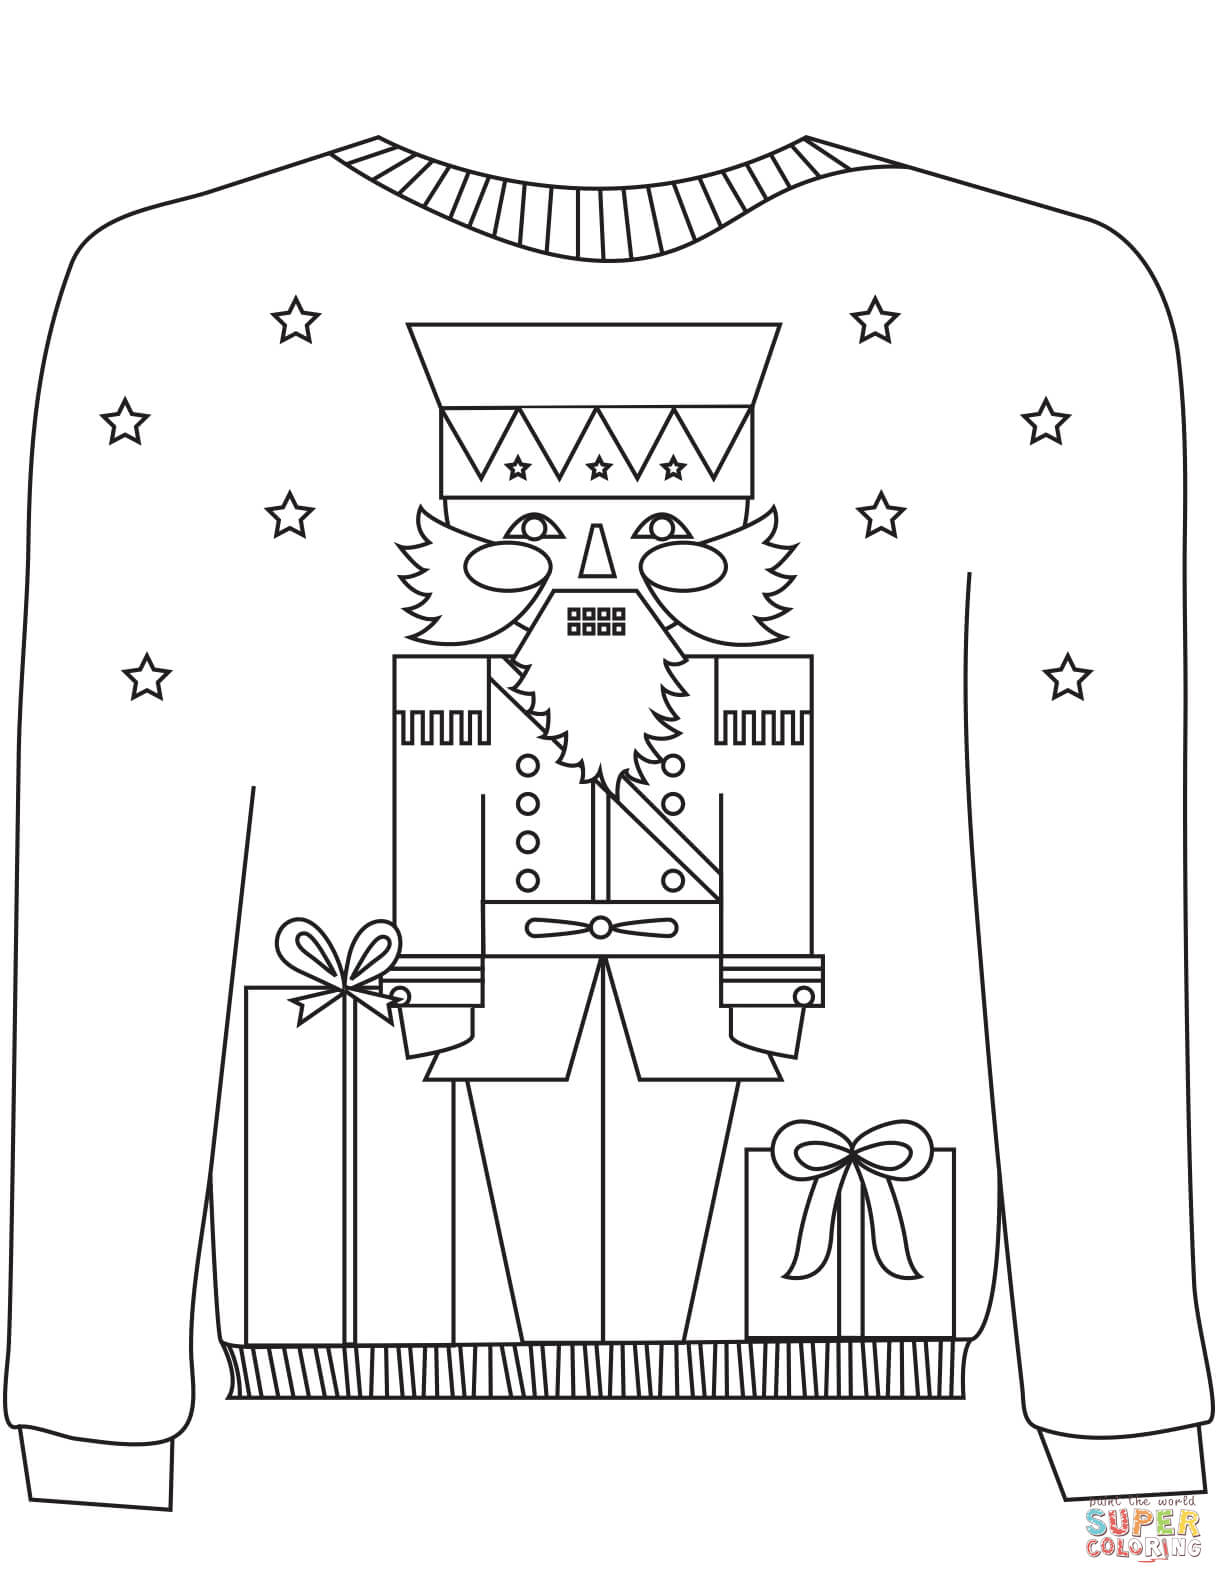 Ugly Christmas Sweater Coloring Pages With The Nutcracker Motif Page